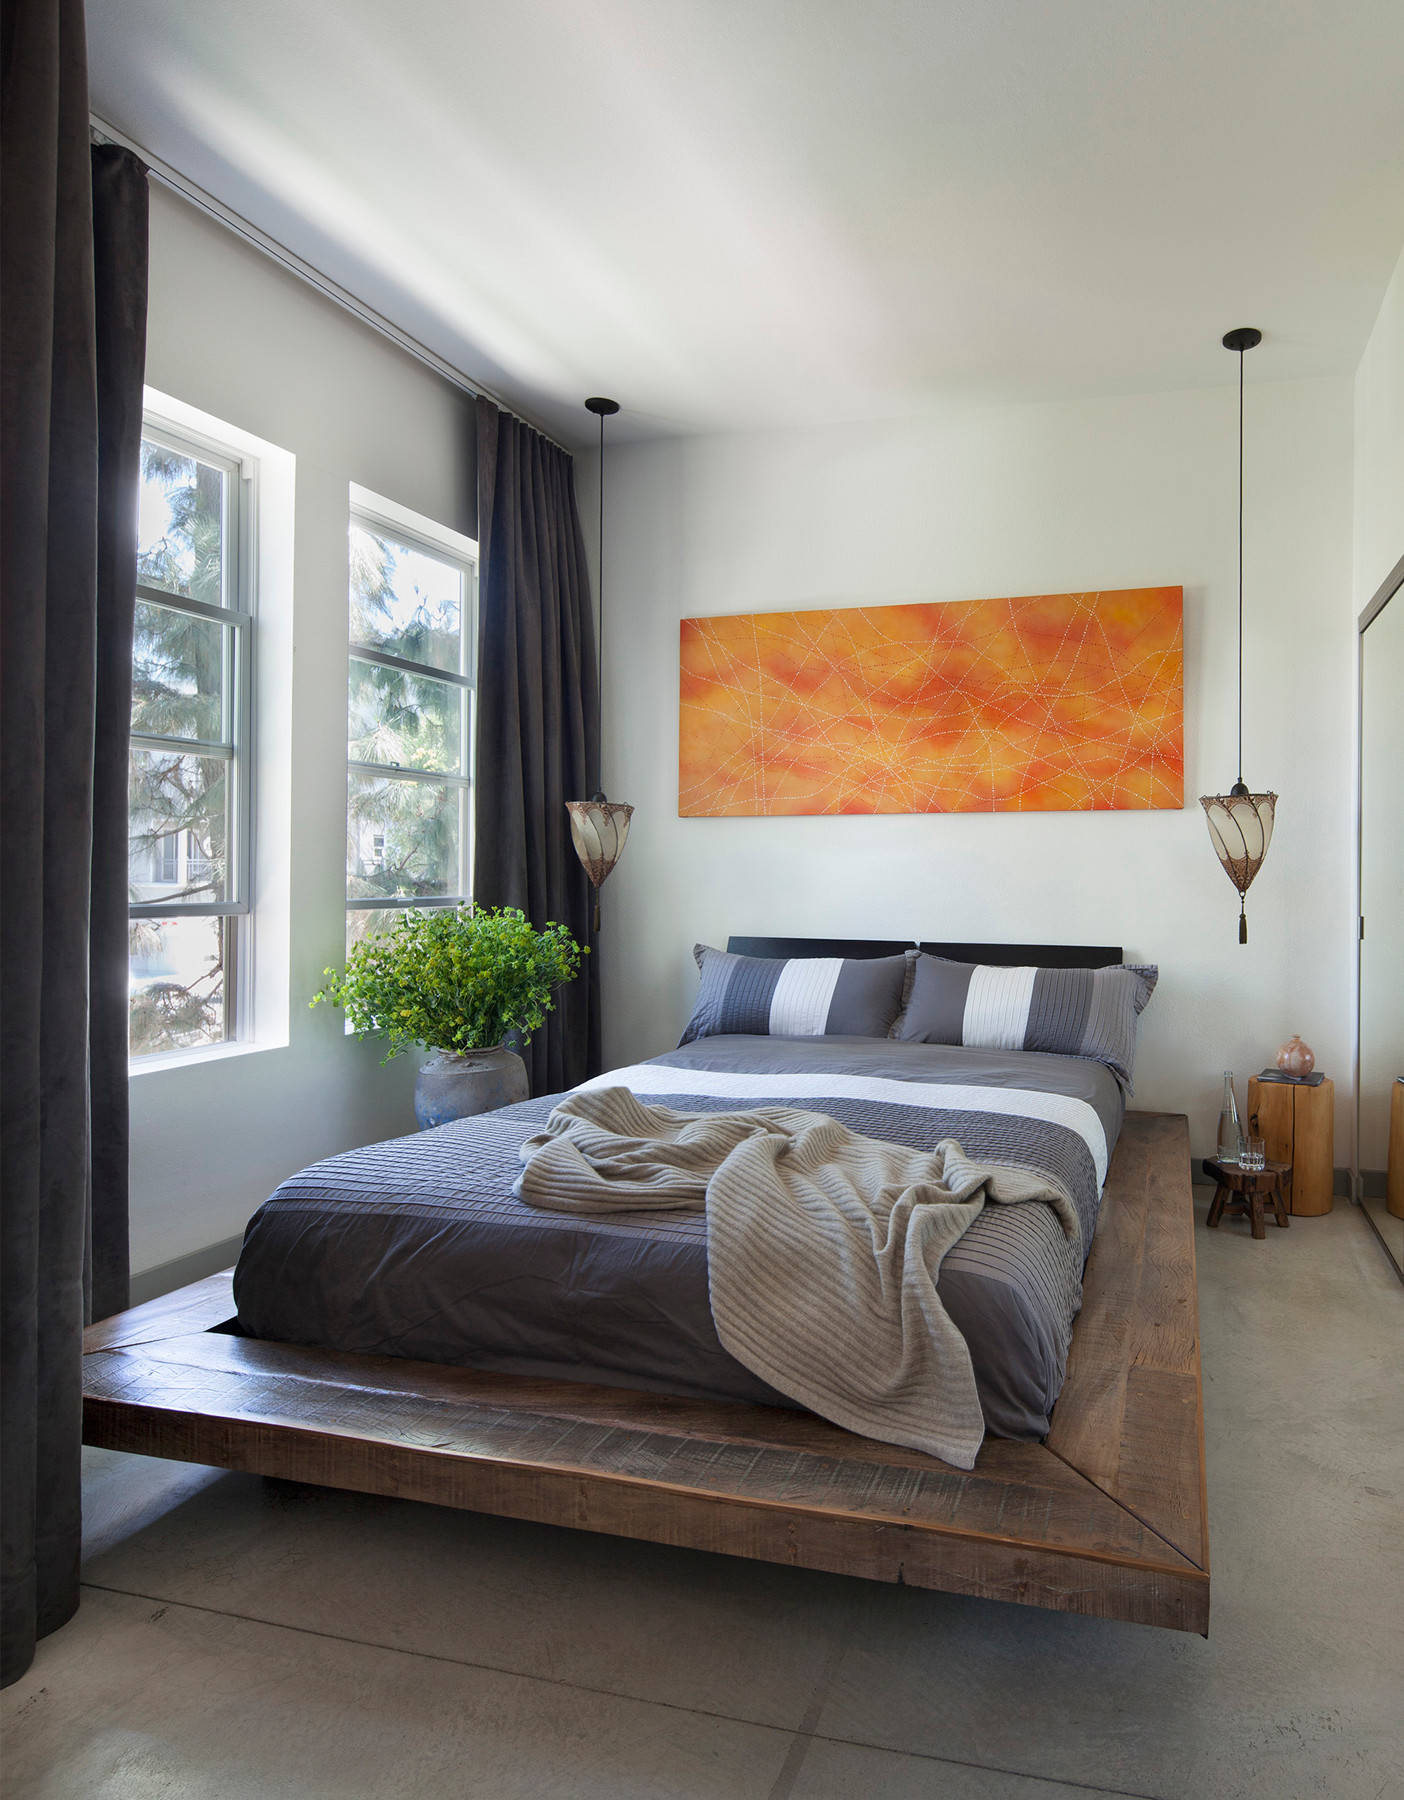 75 Beautiful Loft Style Bedroom Pictures Ideas February 2021 Houzz